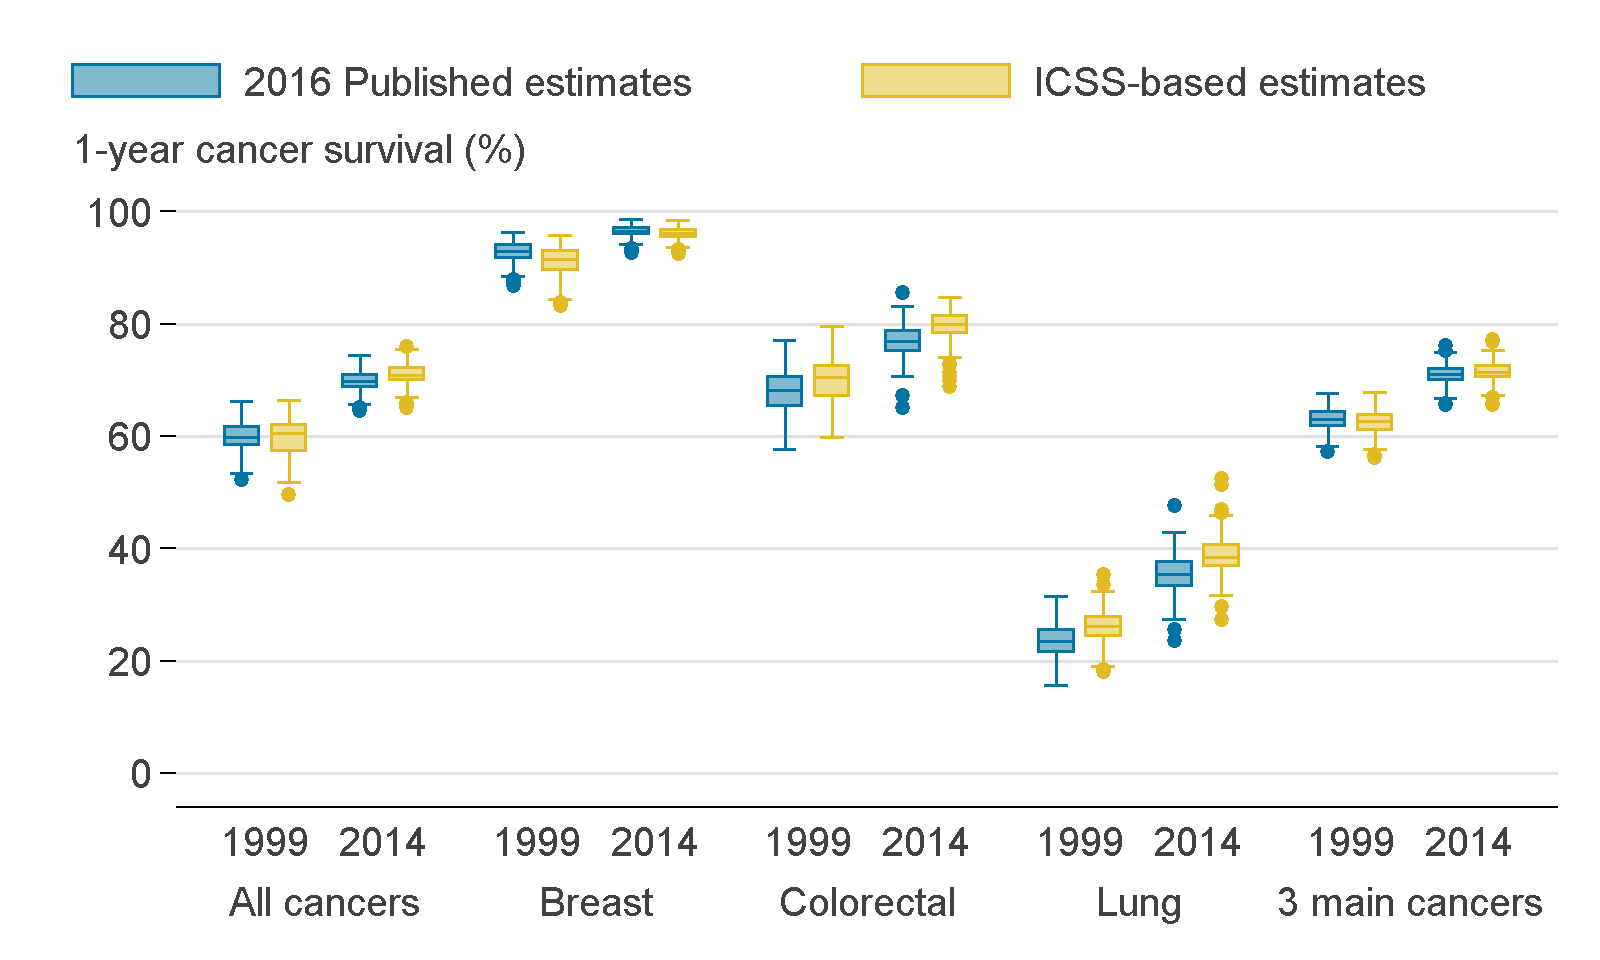 There were minor differences between the 2016 published estimates and the ICSS-based estimates for cancer types in both 1999 and 2014.